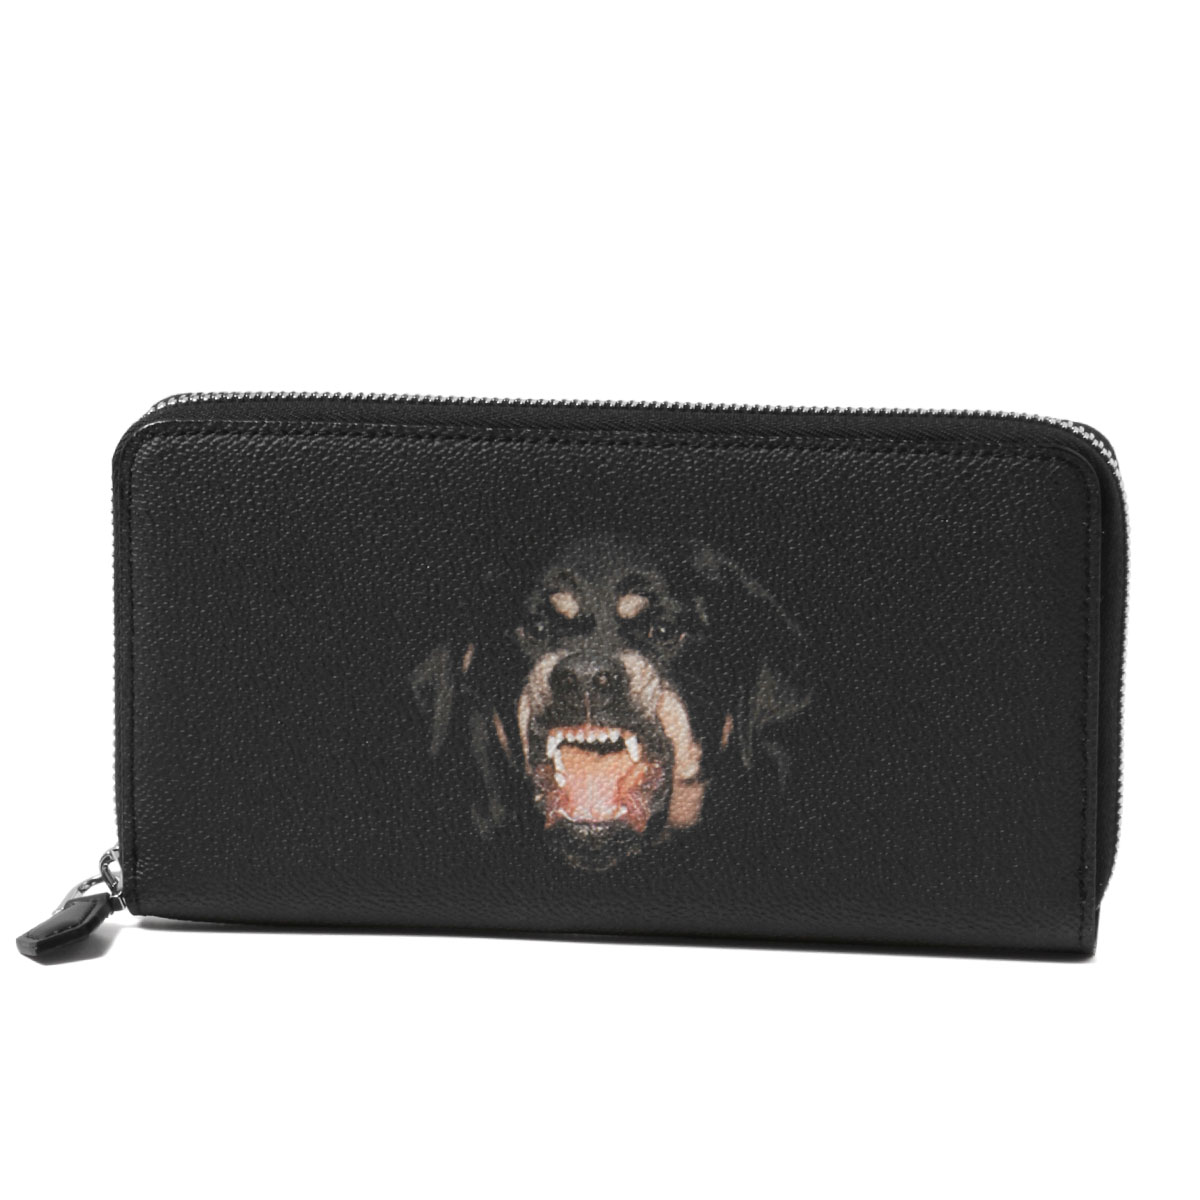 6fa1692b7b importshopdouble  Givenchy GIVENCHY wallet men BK06040337 960 Rottweiler  round fastener long wallet MULTICOLORED black